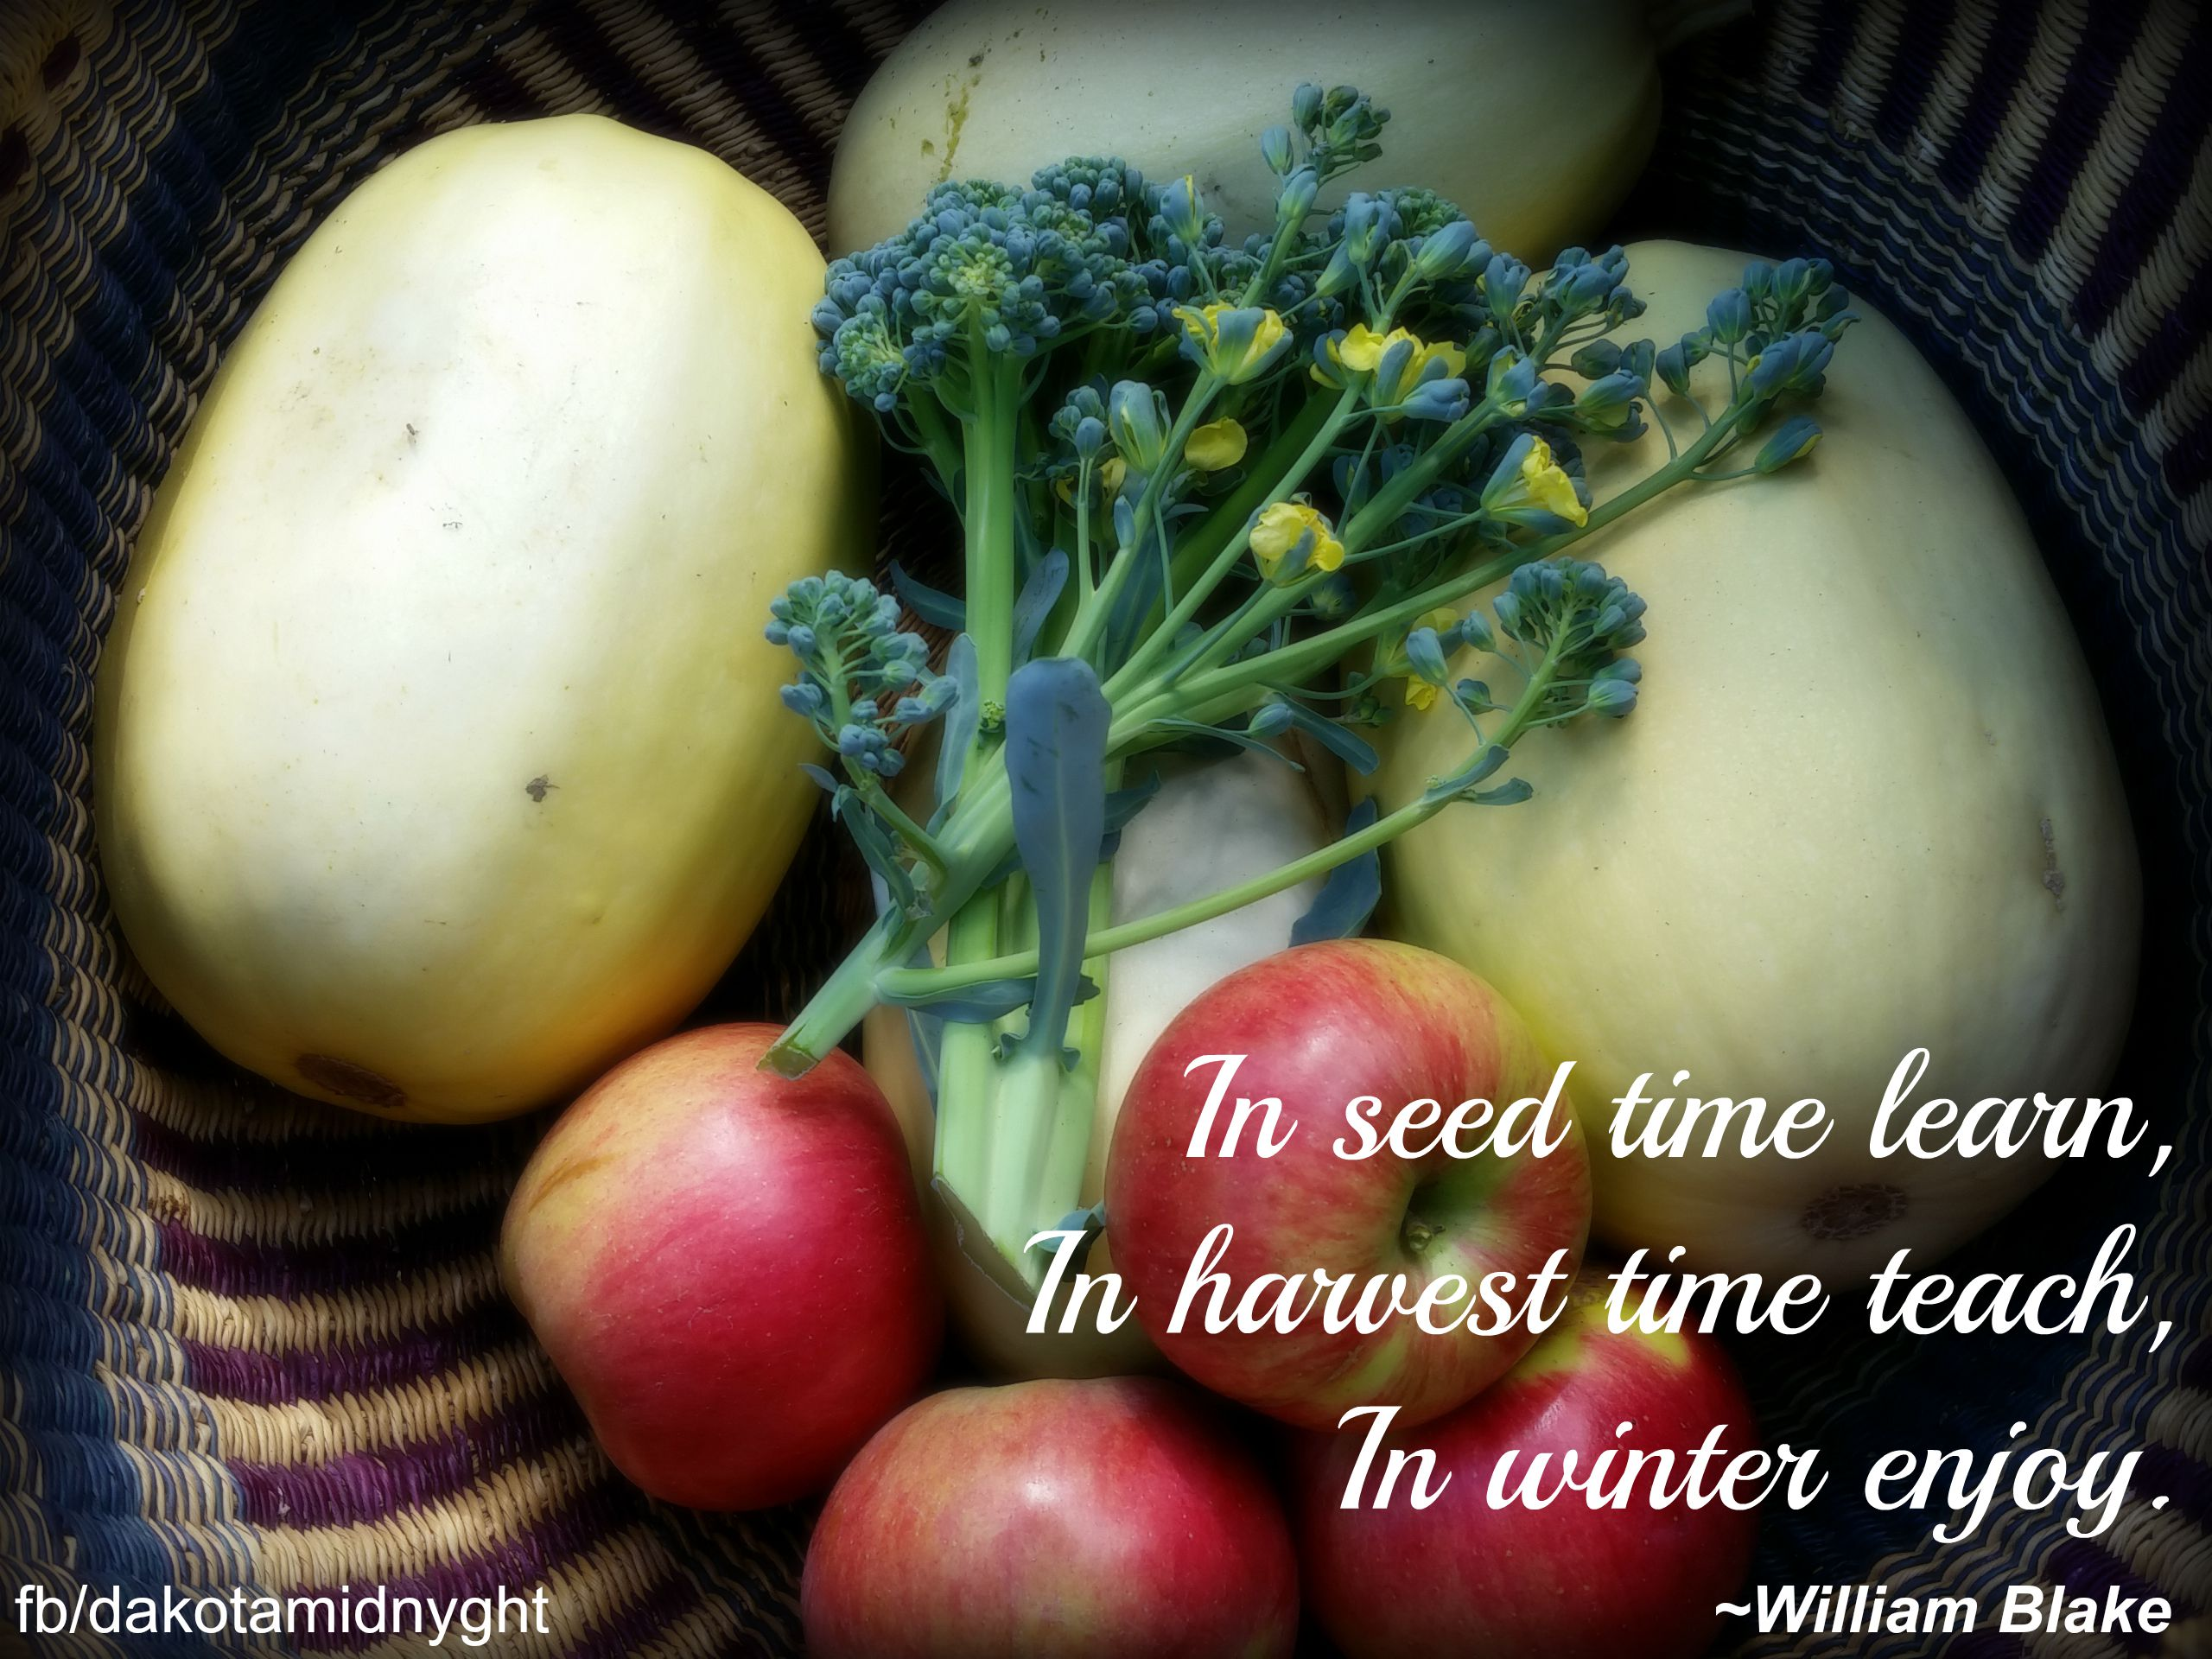 Harvest Quote - FB